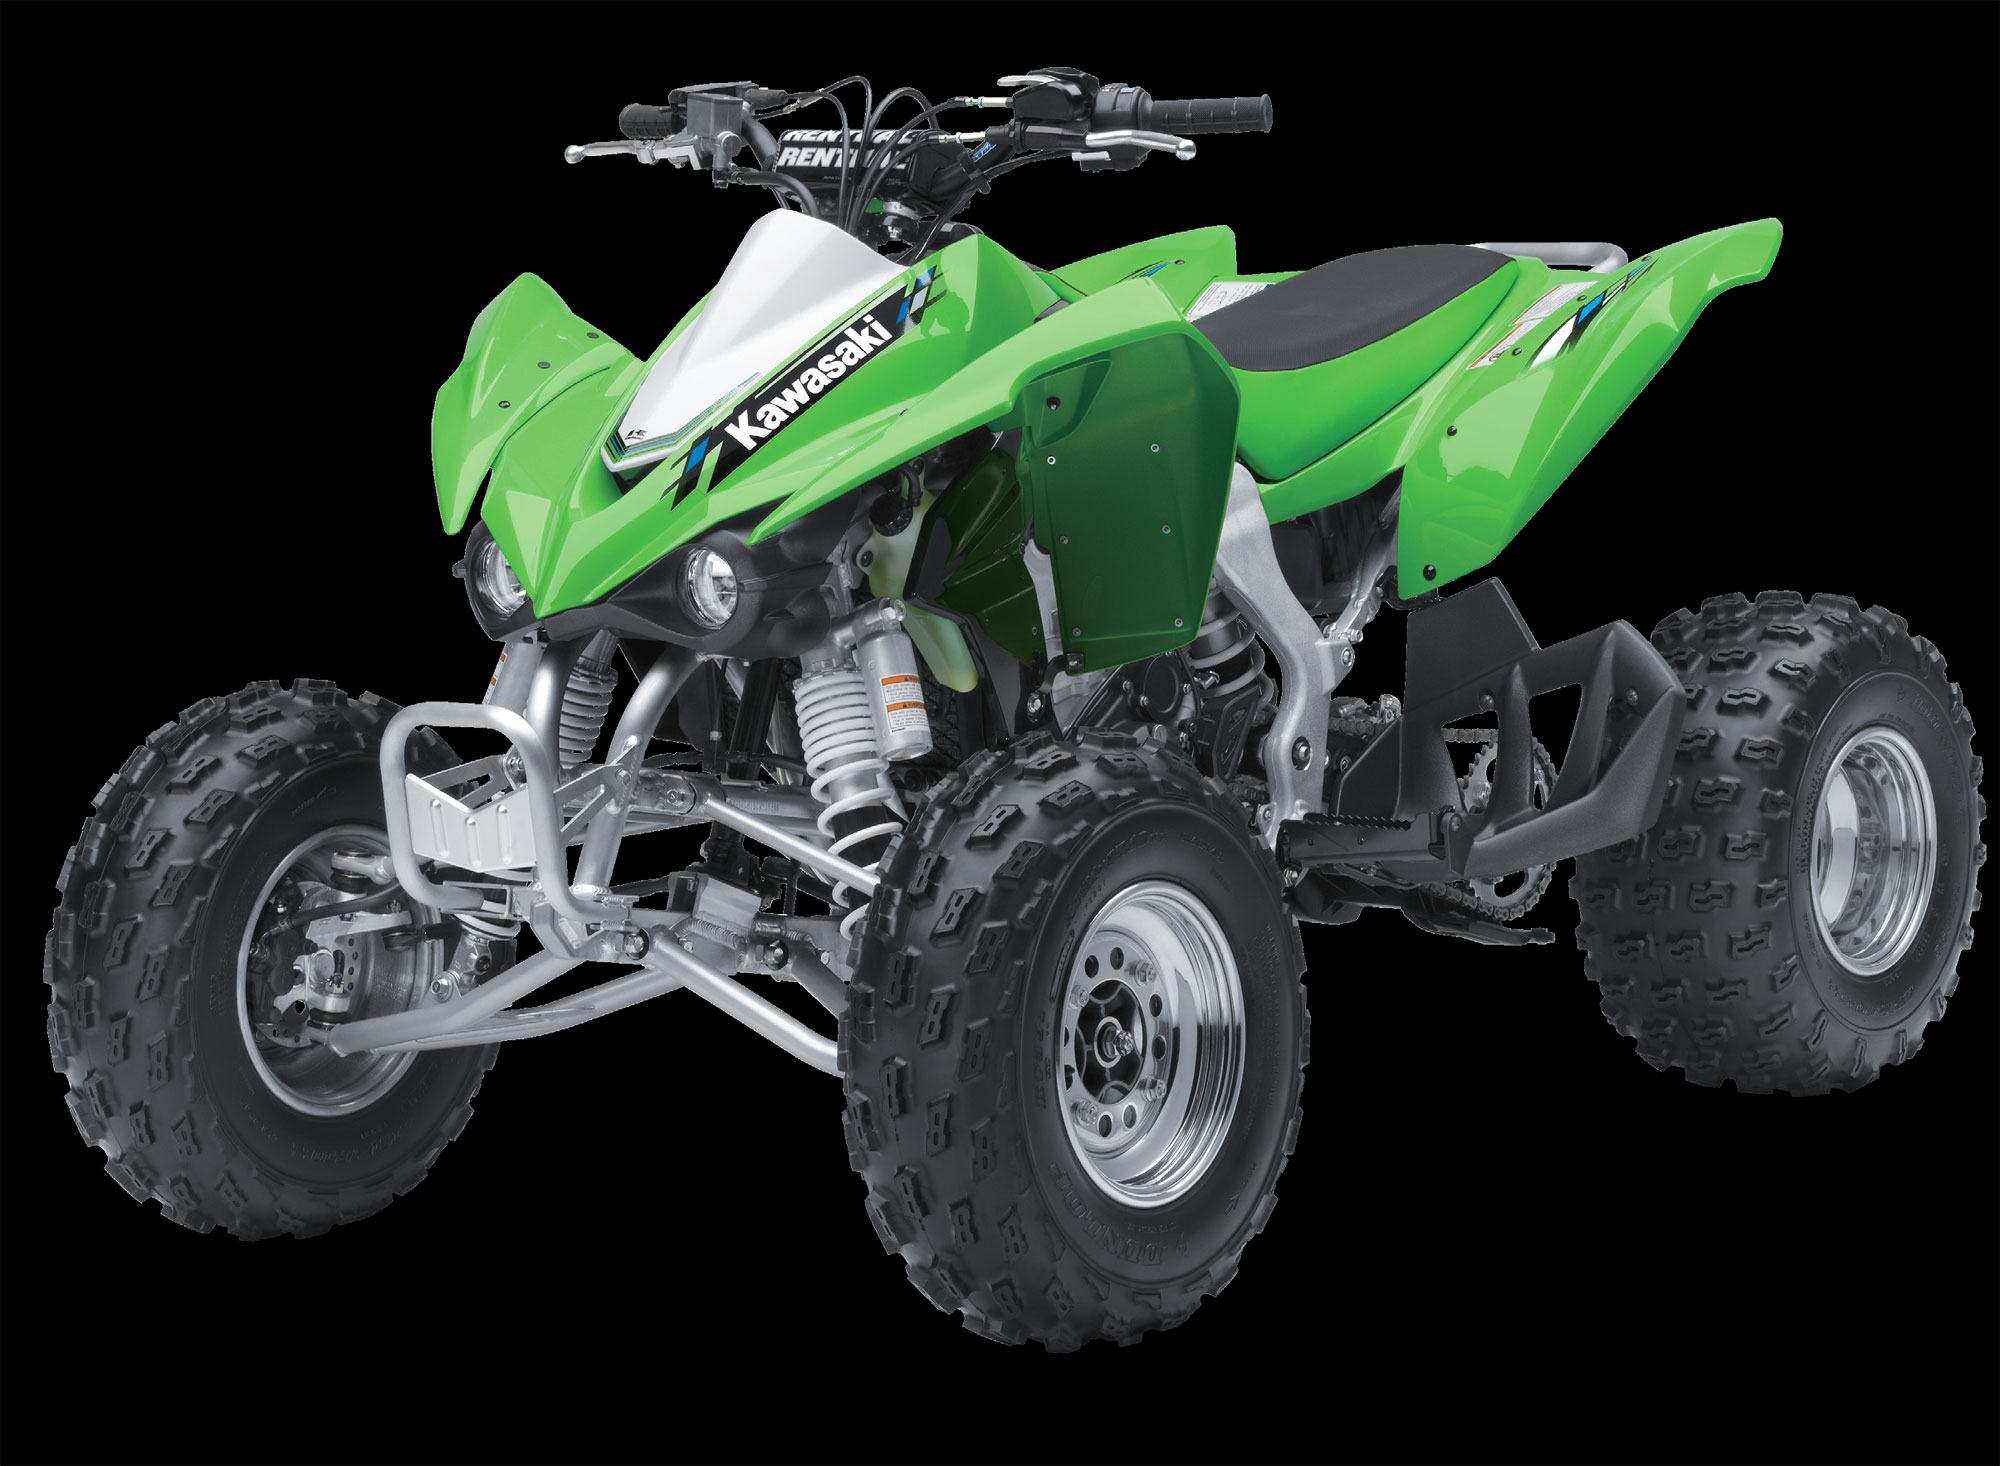 2013 kawasaki kfx450r review. Black Bedroom Furniture Sets. Home Design Ideas